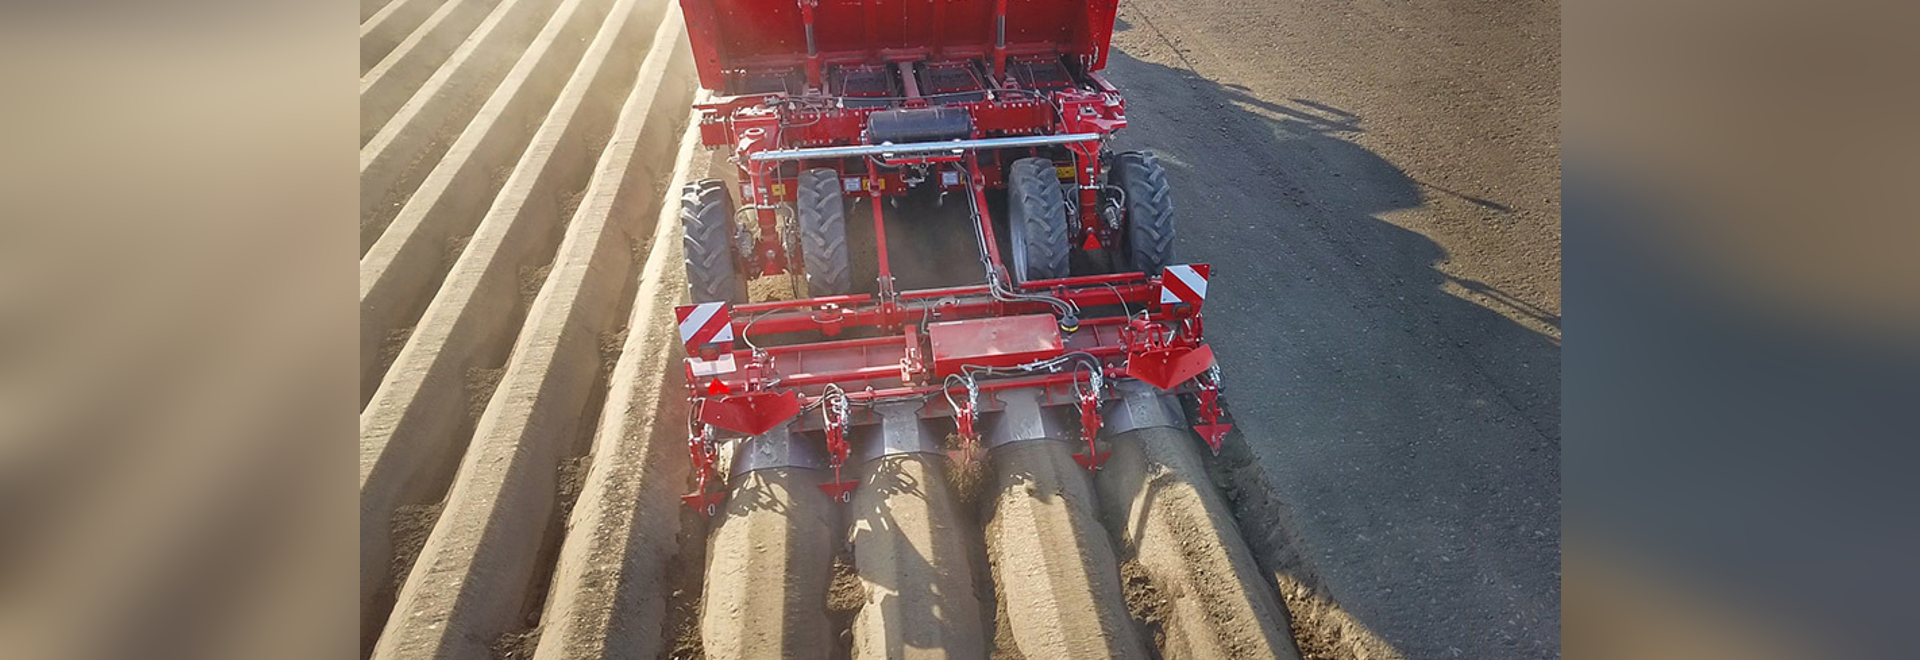 Grimme introduces new innovative planting technology